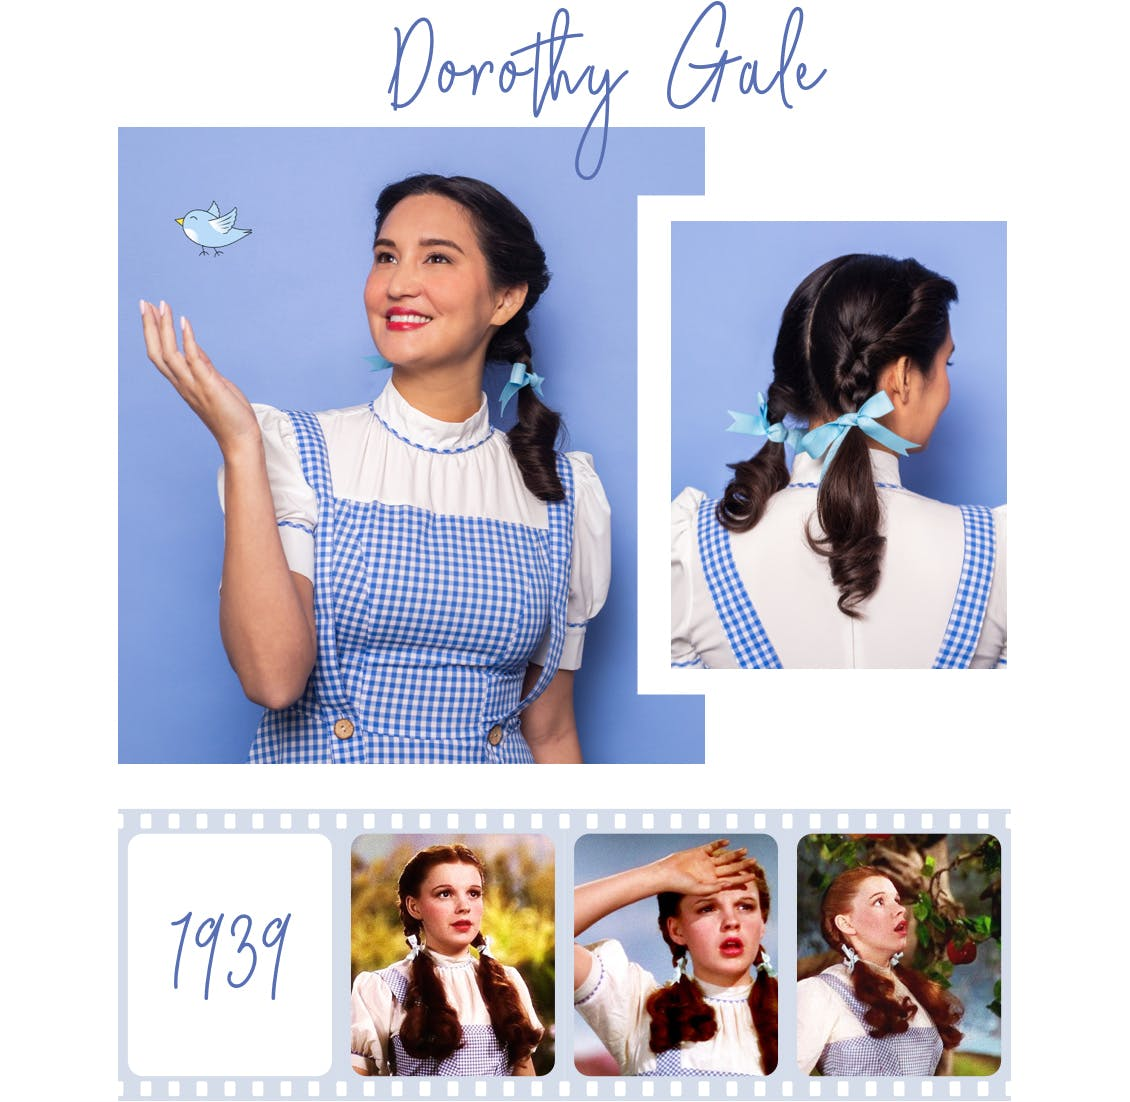 Image of esalon employee as dorothy gale from the wizard of oz with dark brunette hair color and pigtails with collage of original actress image below from 1939